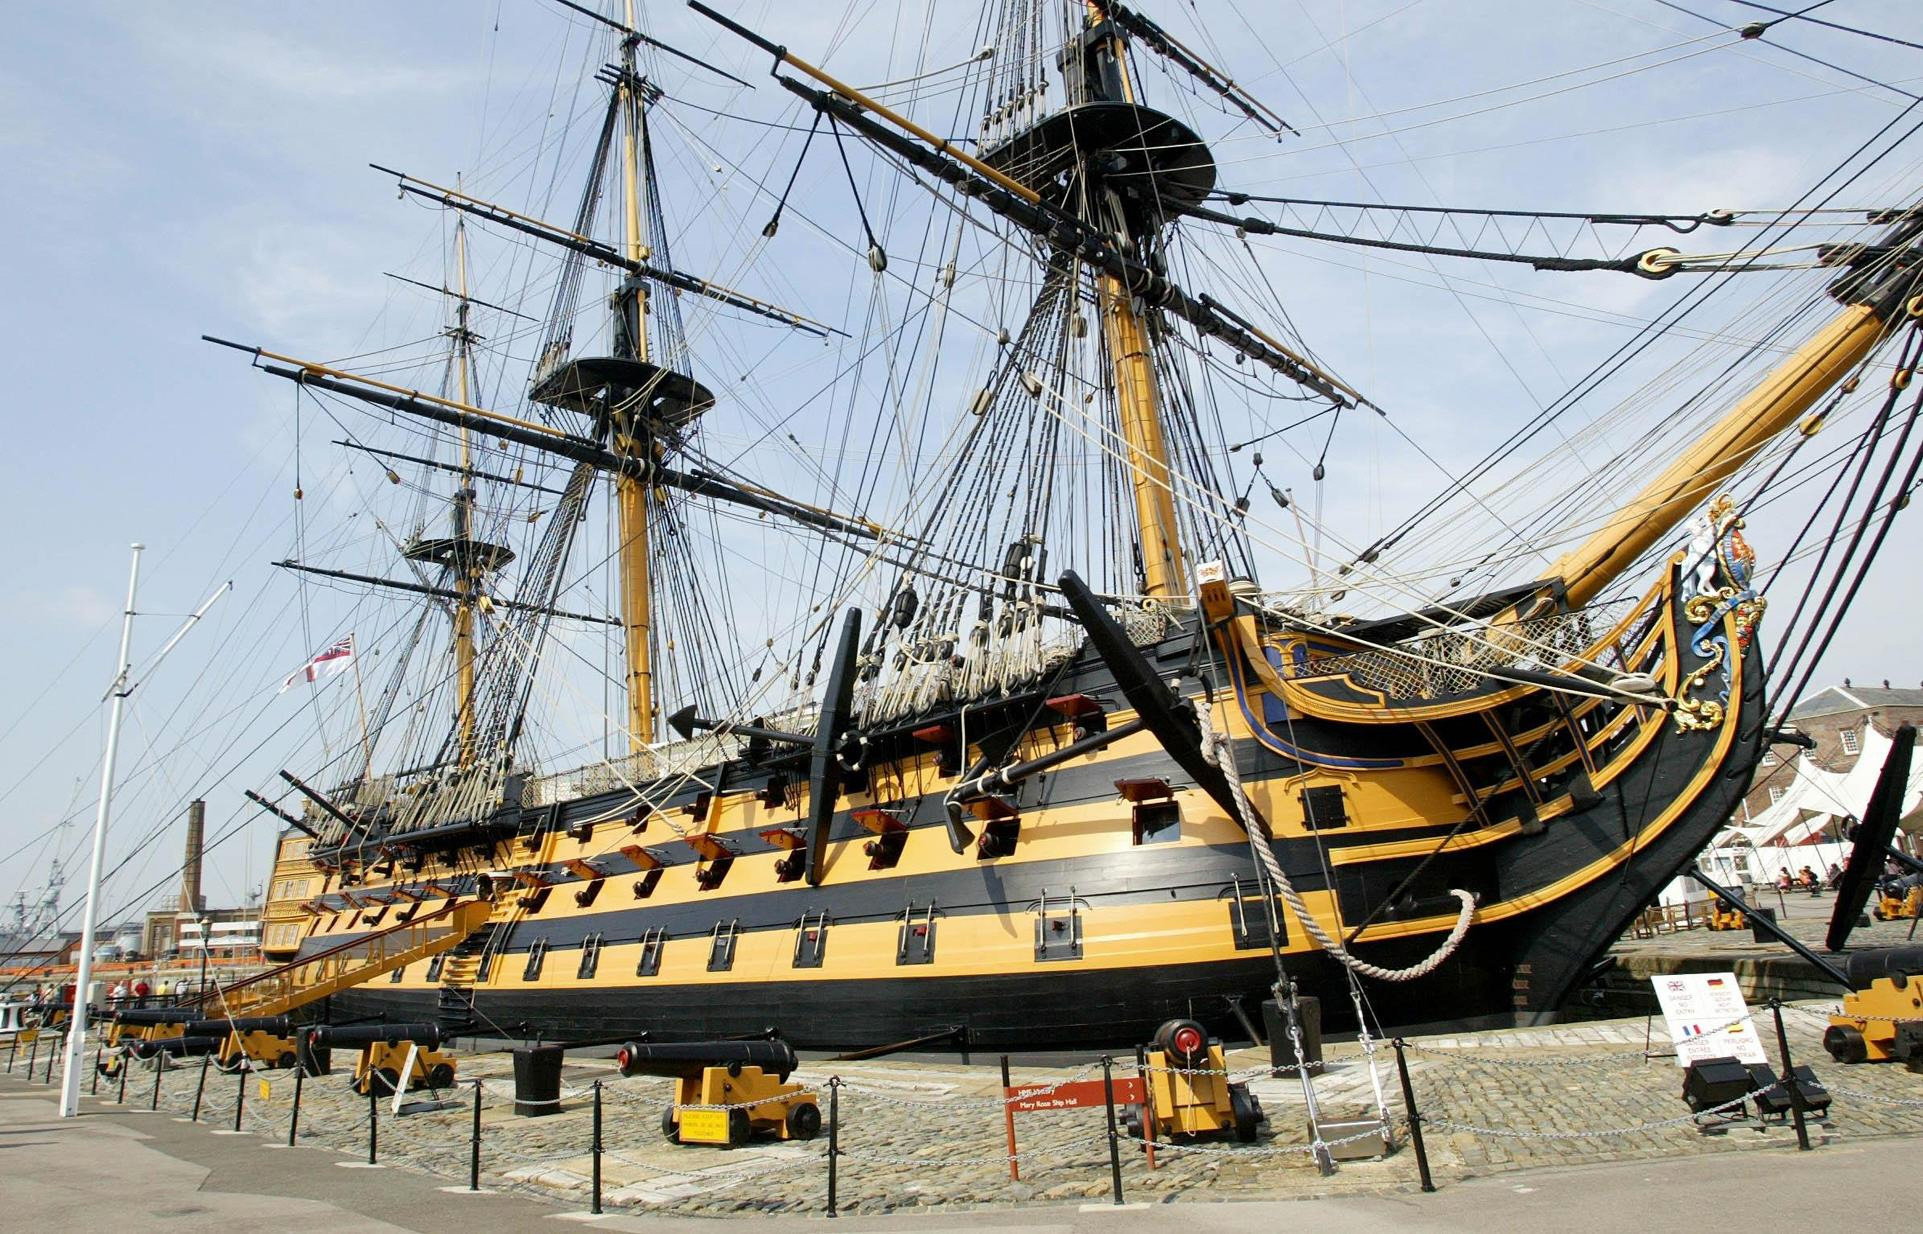 HMS Victory in Portsmouth